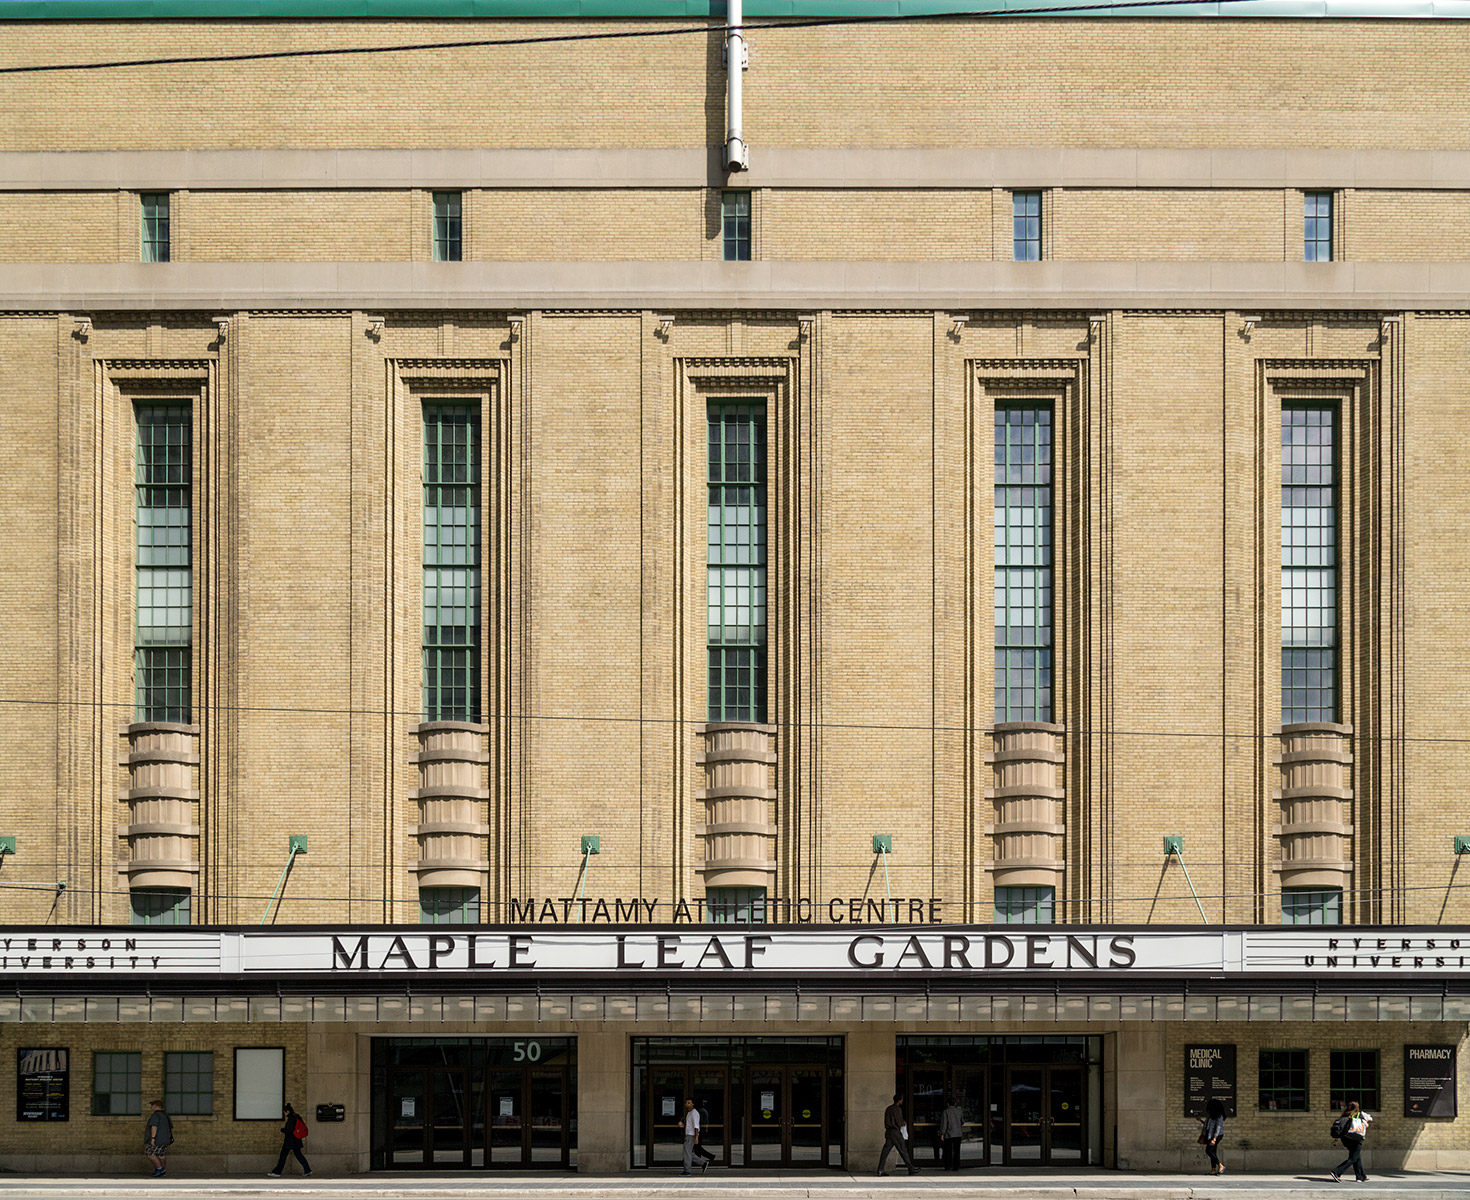 20150702. The art deco/ art moderne Maple Leaf Gardens, once a c